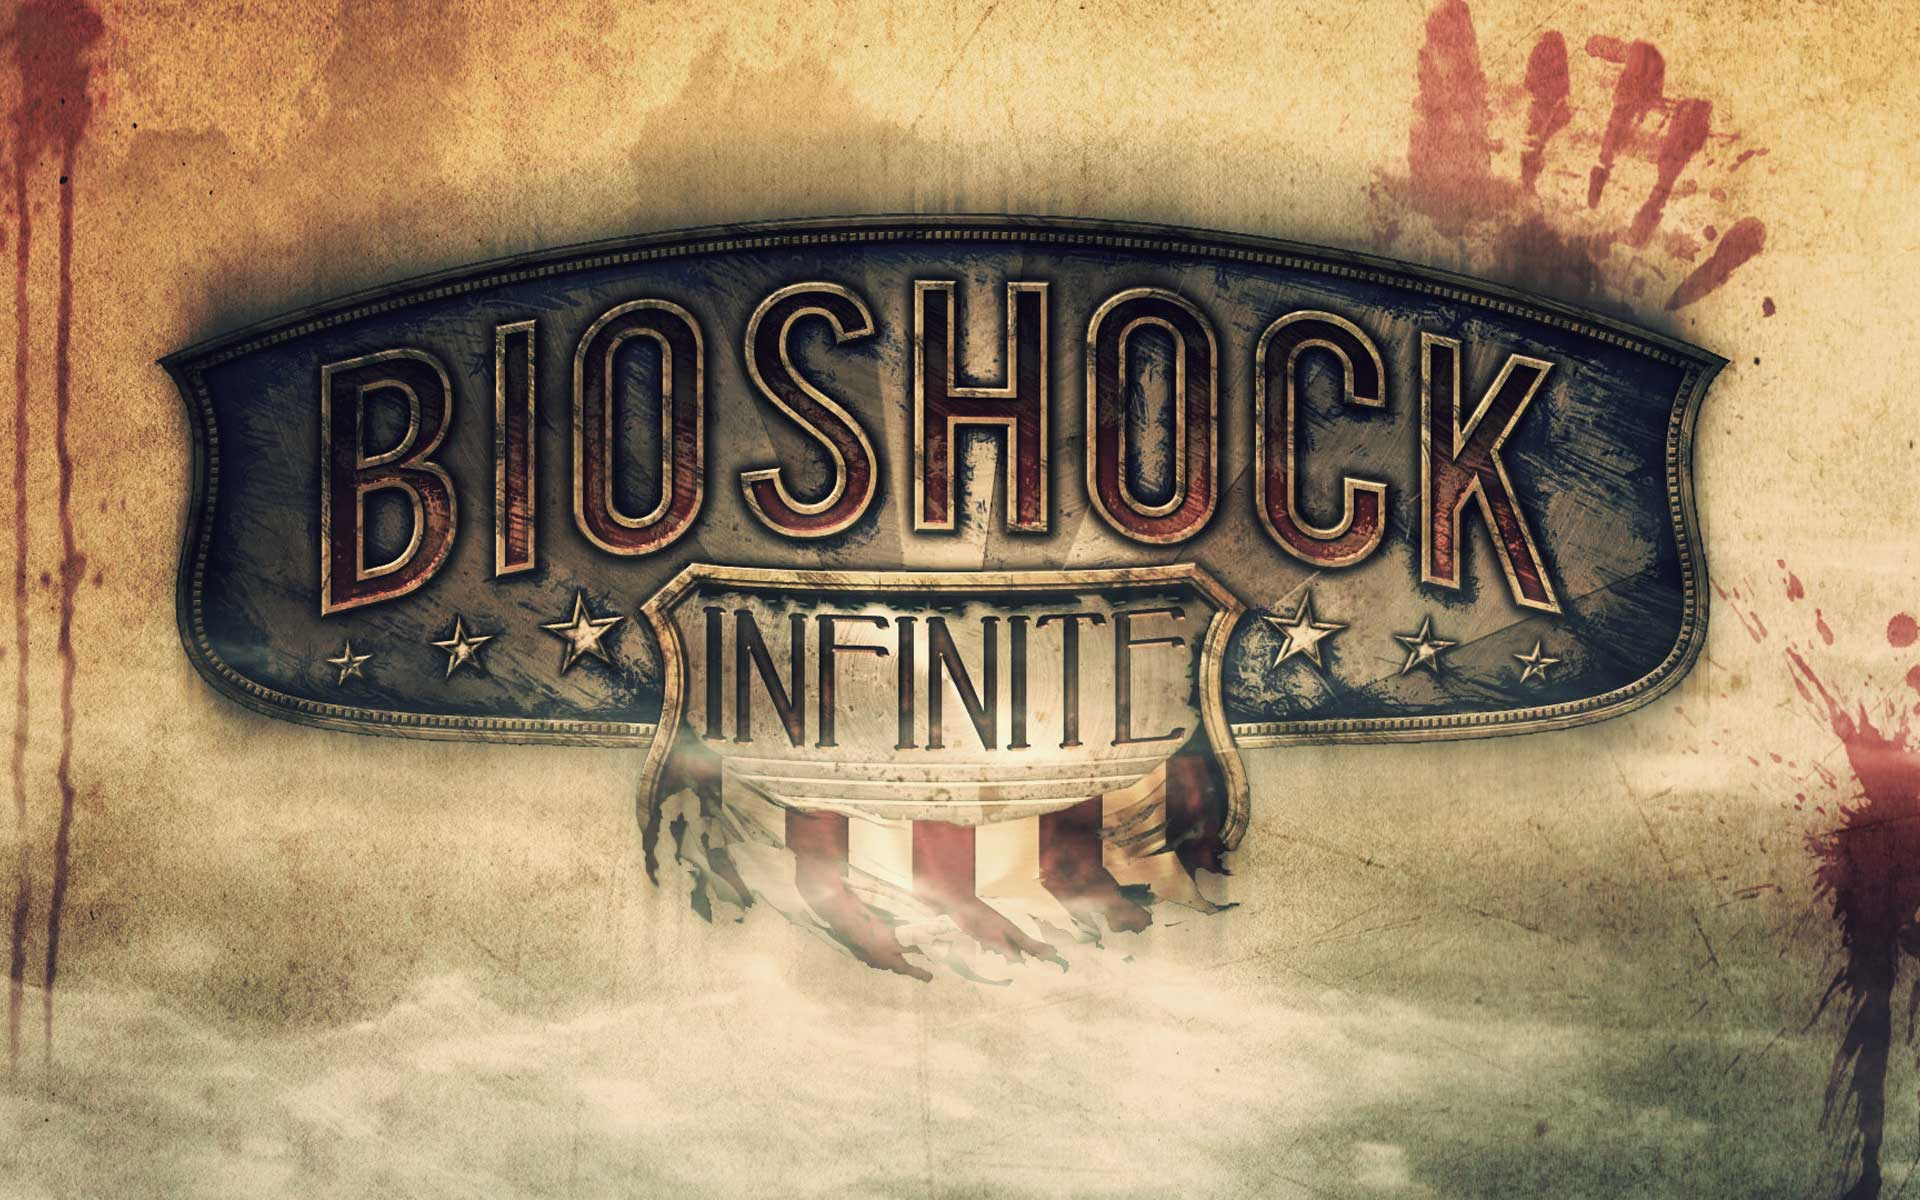 Wallpapers For > Bioshock Infinite Wallpapers 1080p Booker